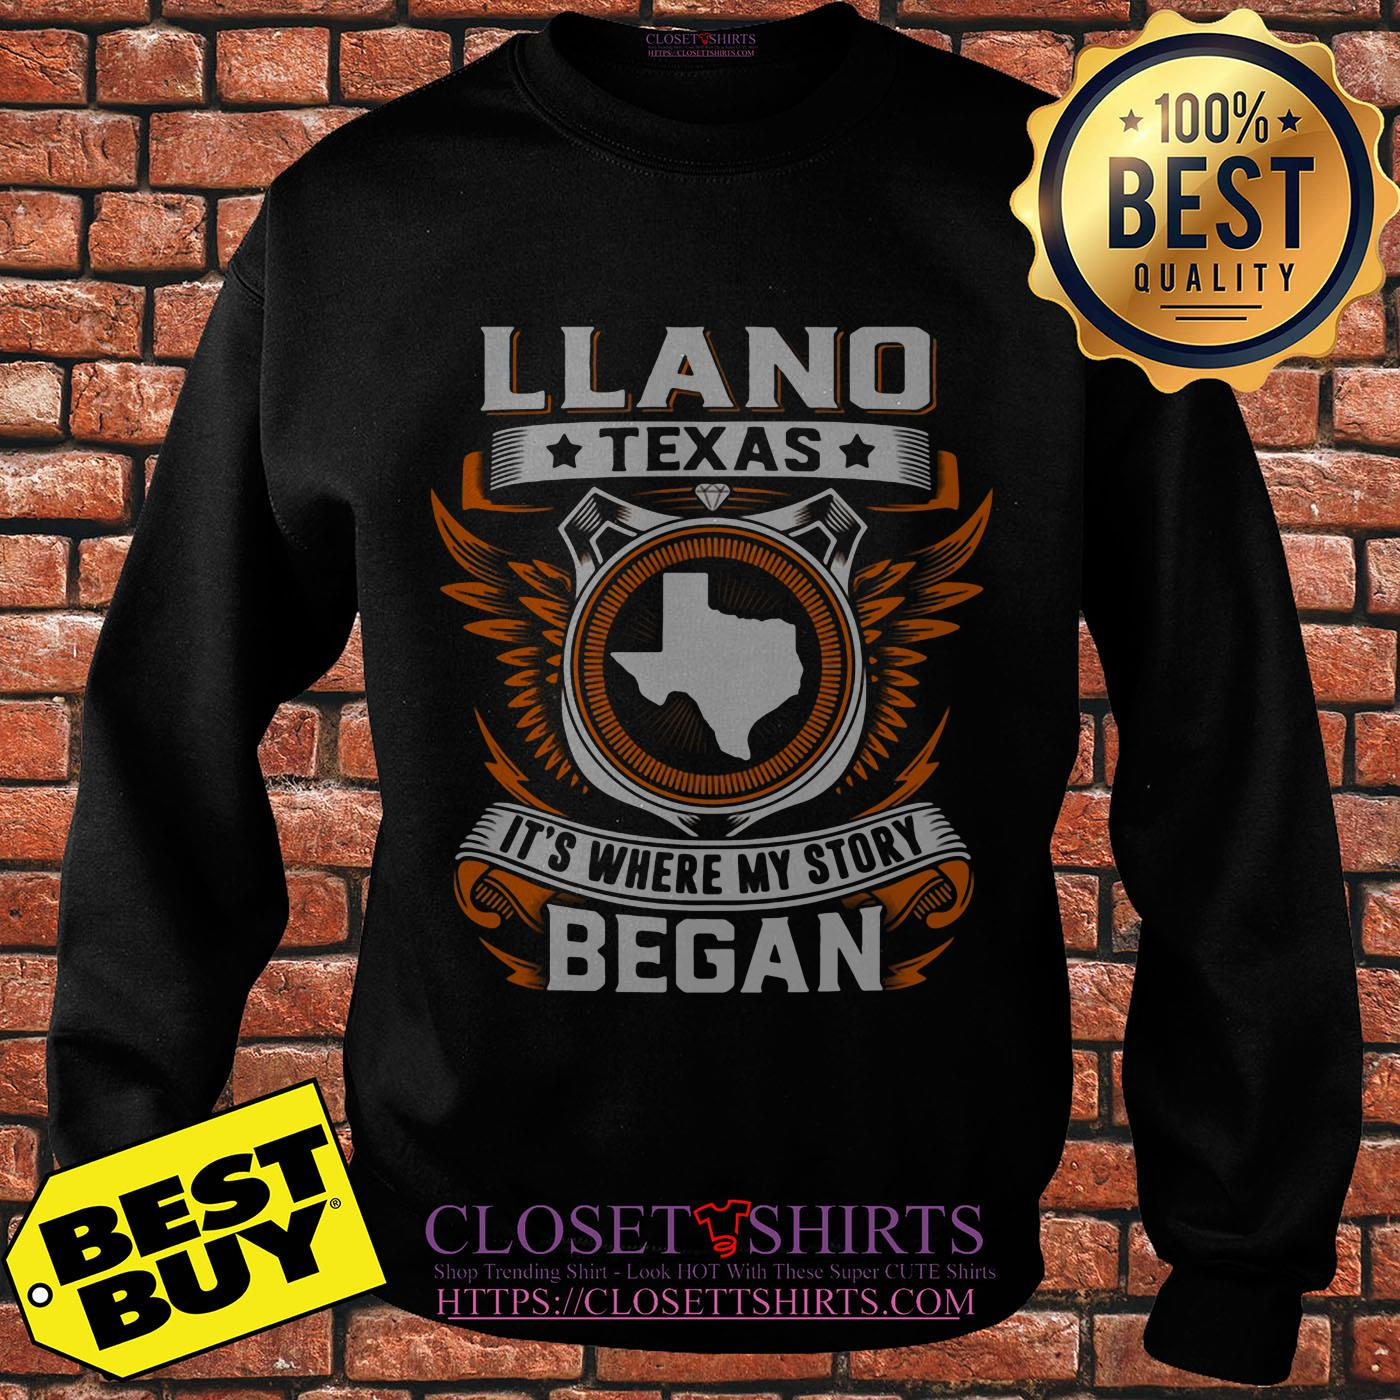 Llano Texas It's Where My Story Began Sweatshirt